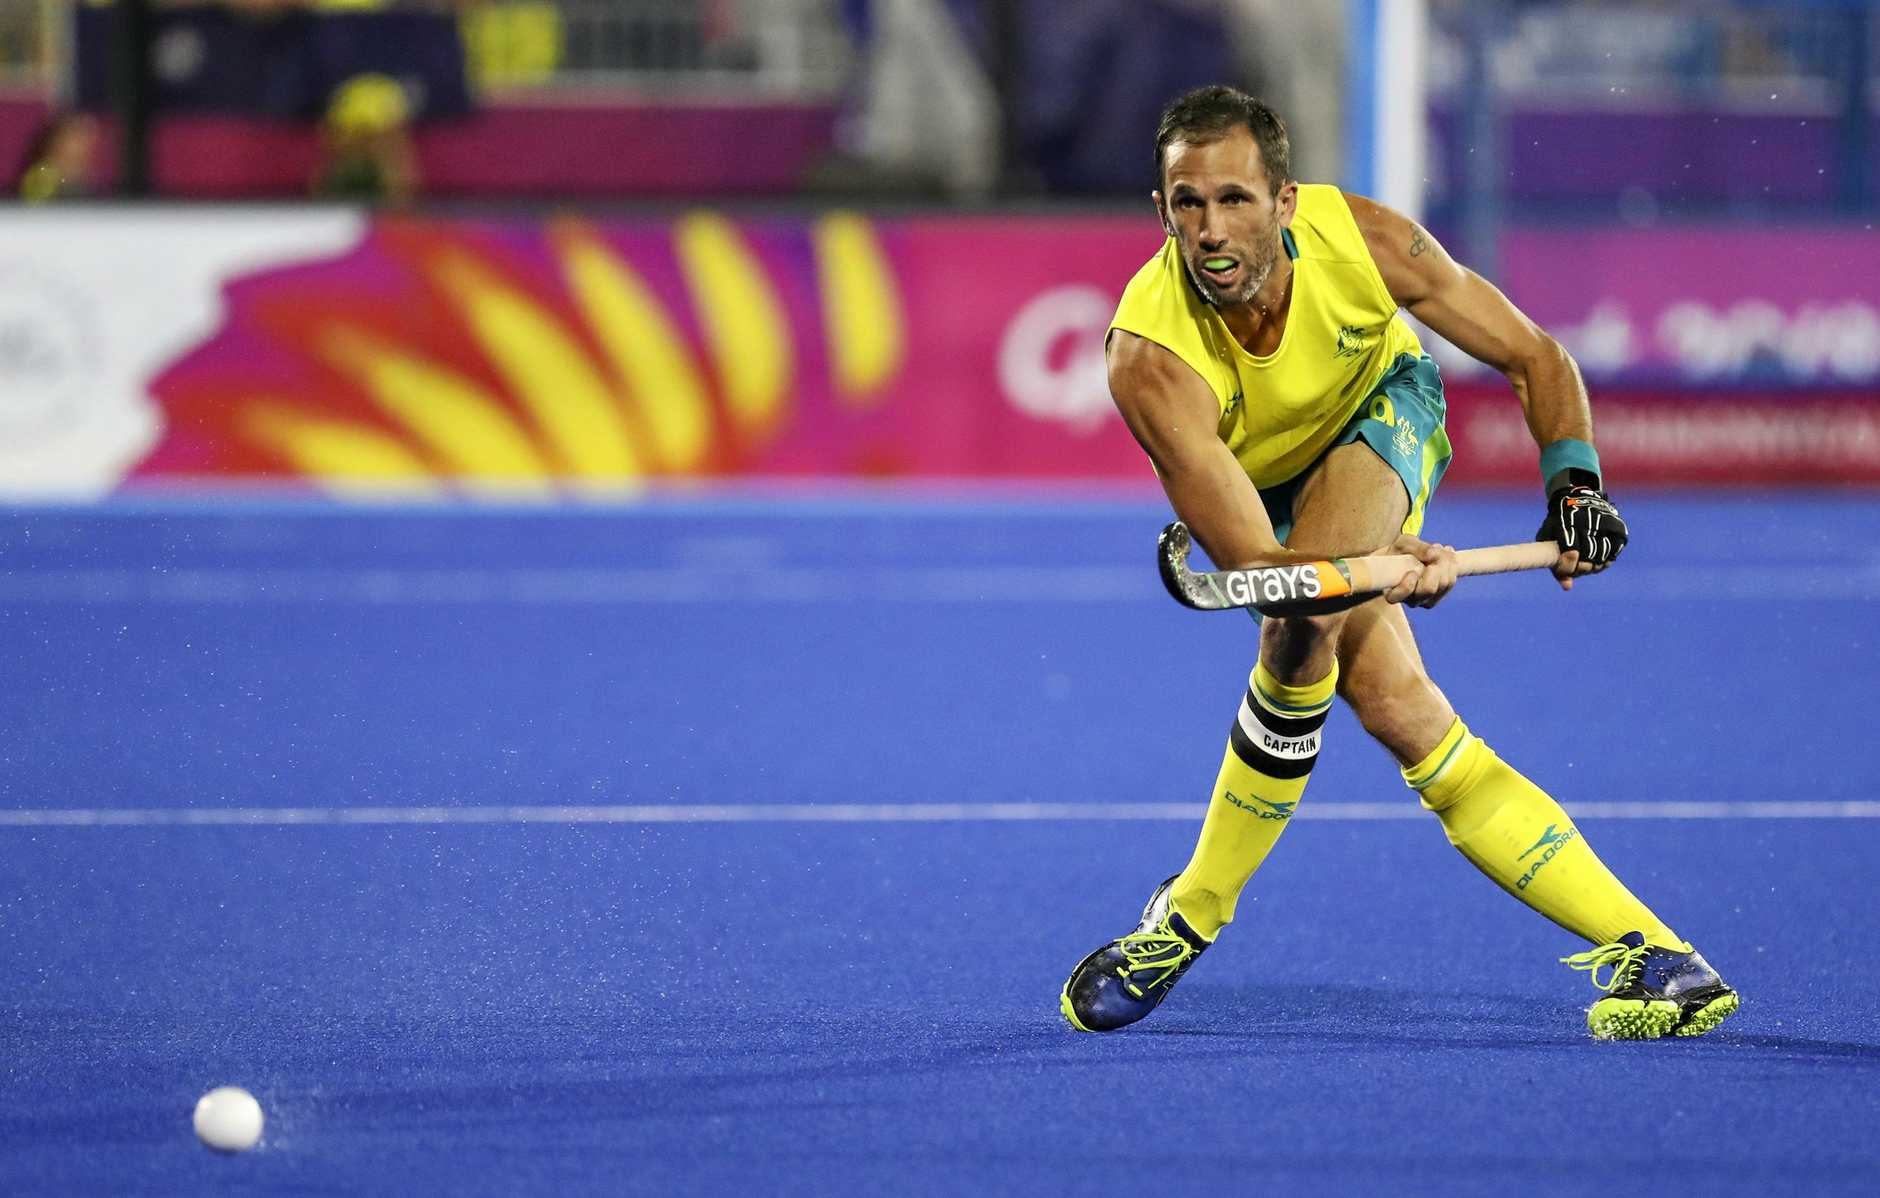 GOING FOR GOLD: Mark Knowles at the Gold Coast 2018 Commonwealth Games Hockey Centre playing for the Kookaburras v South Africa.